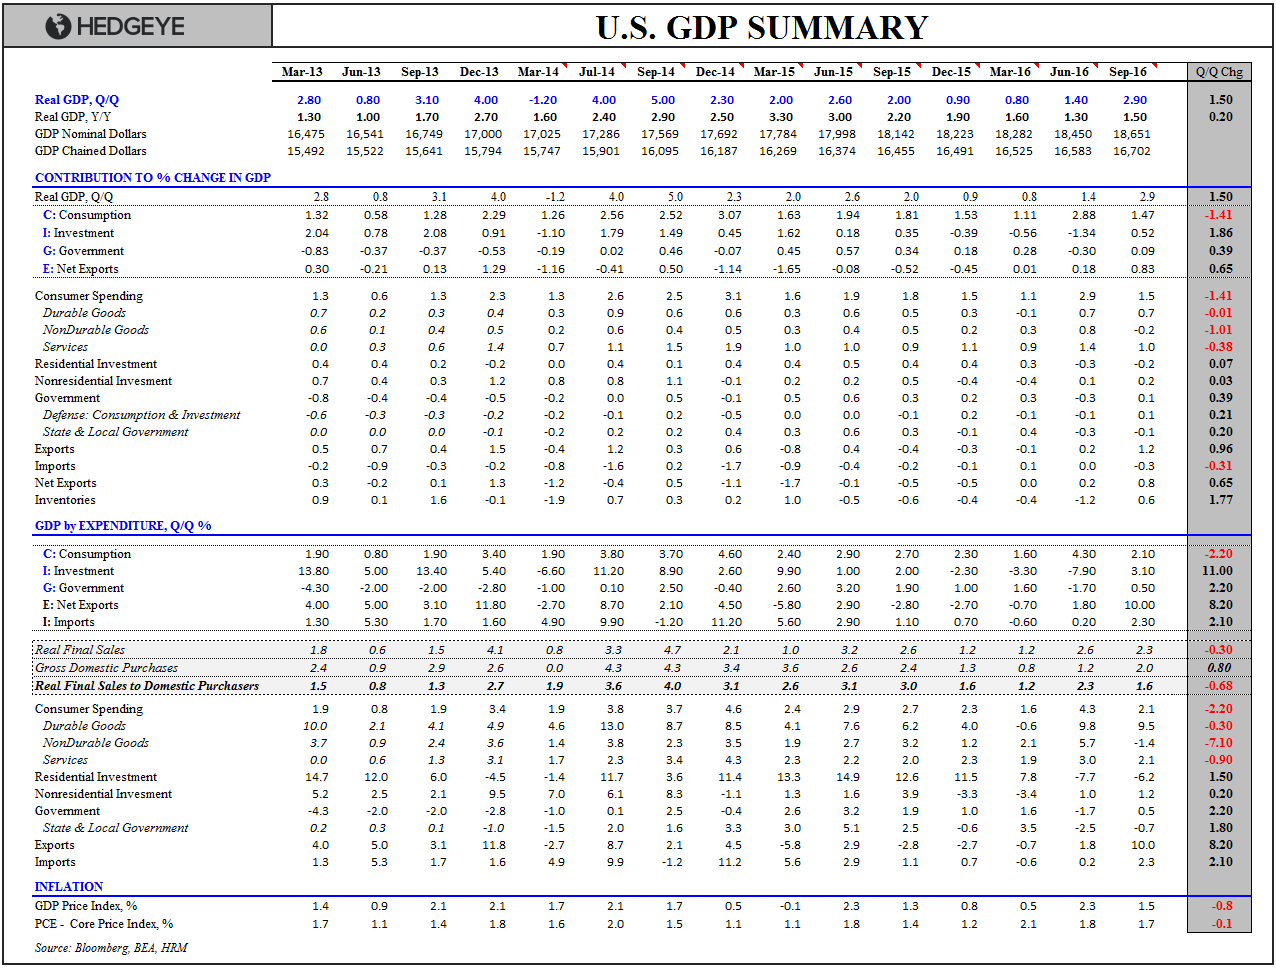 U.S. GDP: Welcome to the Depths of the Cycle - GDP Summary Table 3Q16